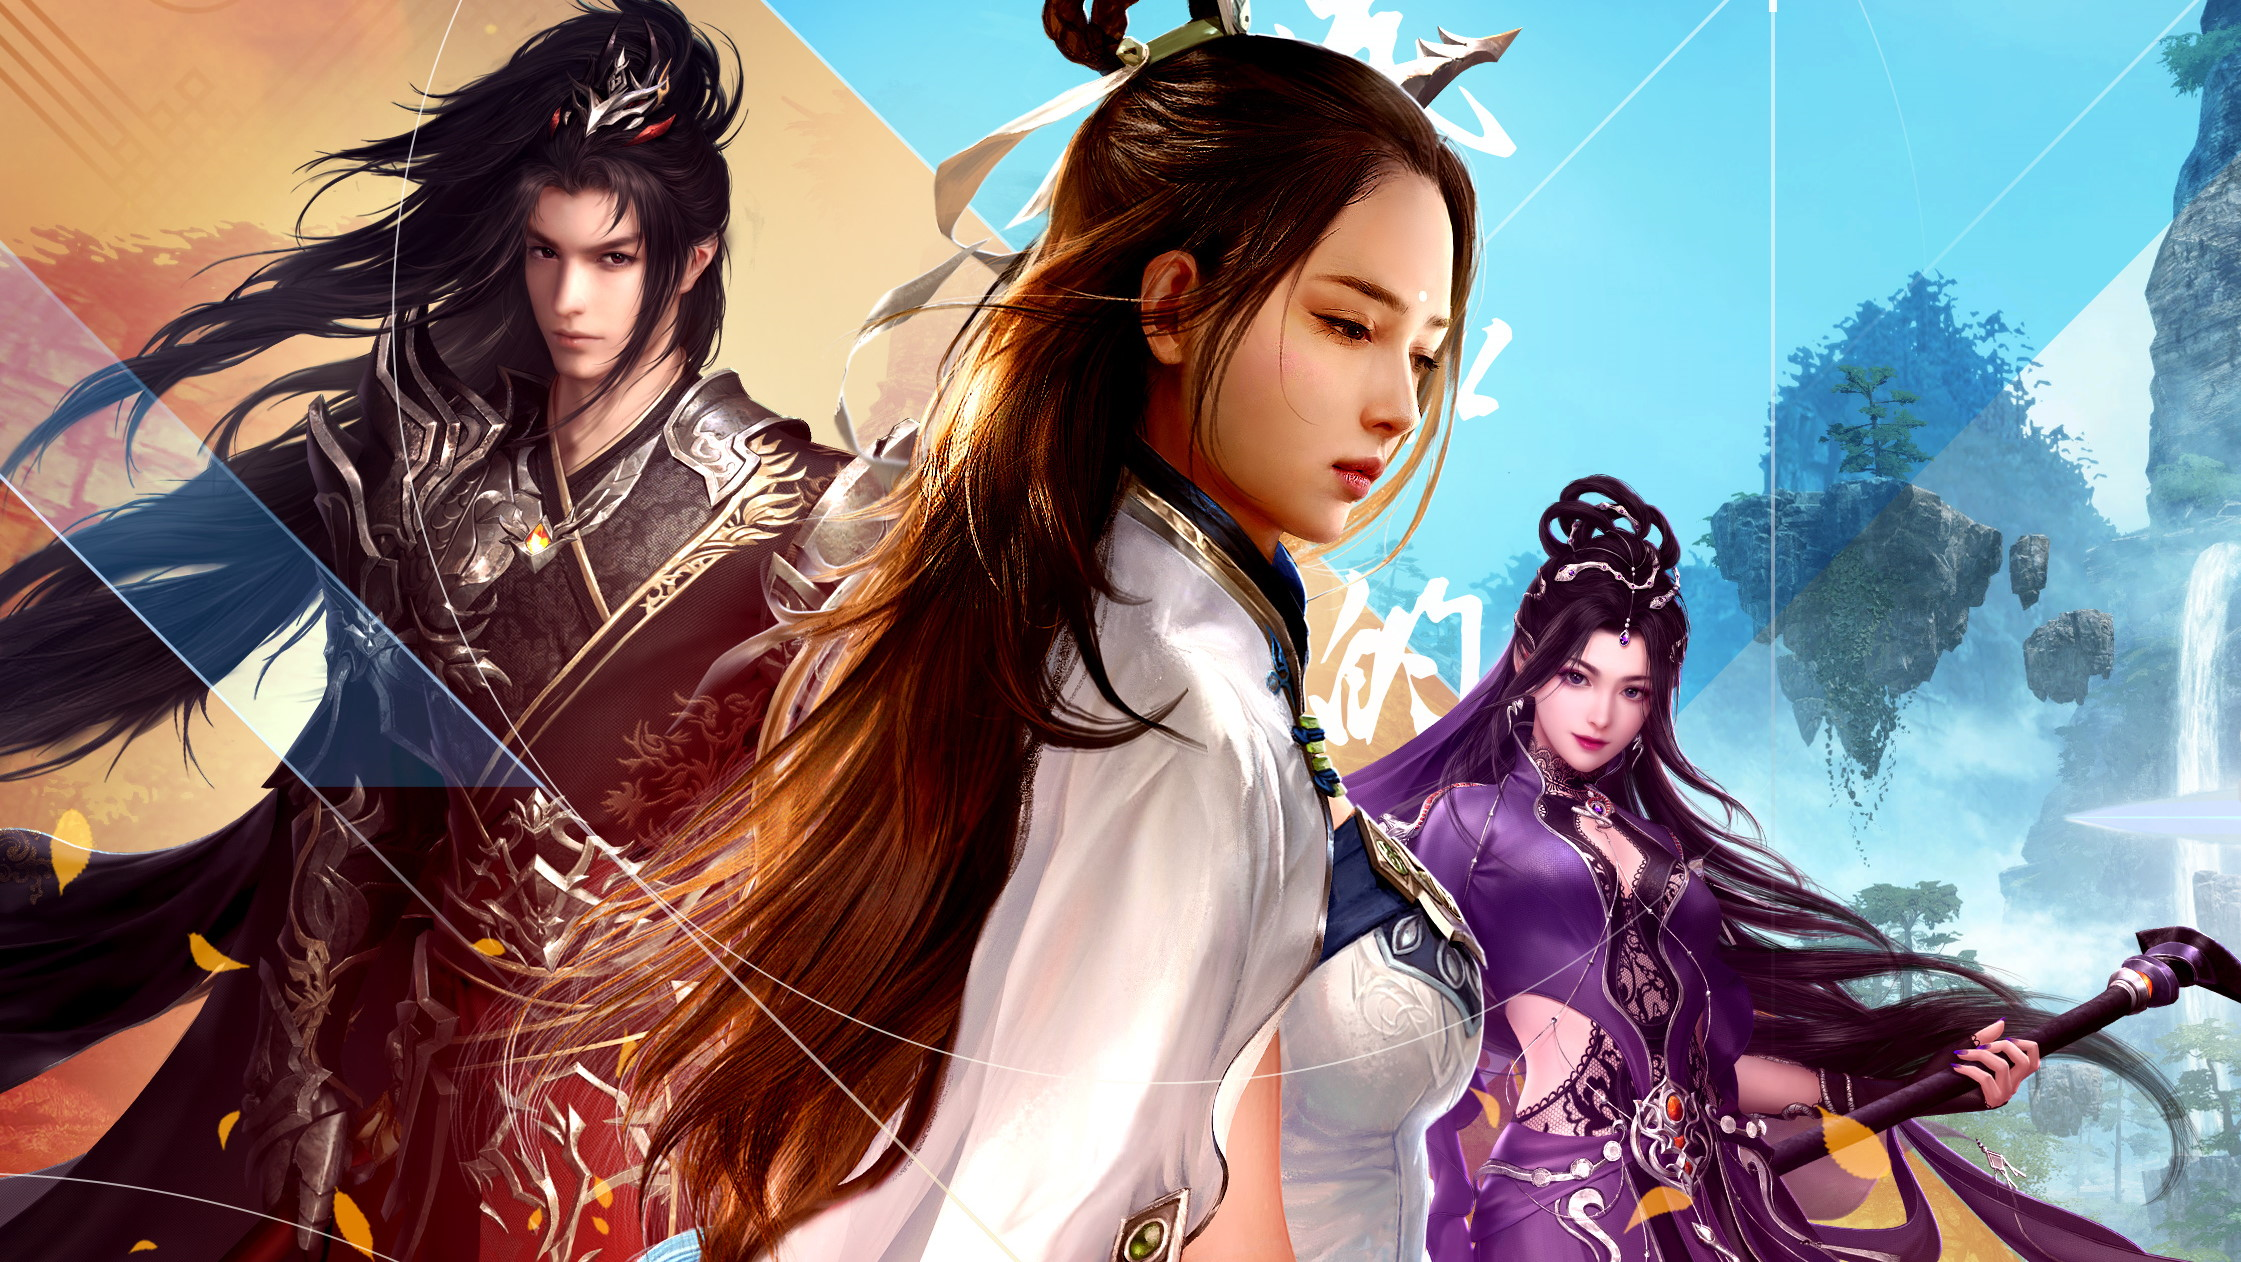 One of China's biggest MMOs is coming to the West later this year